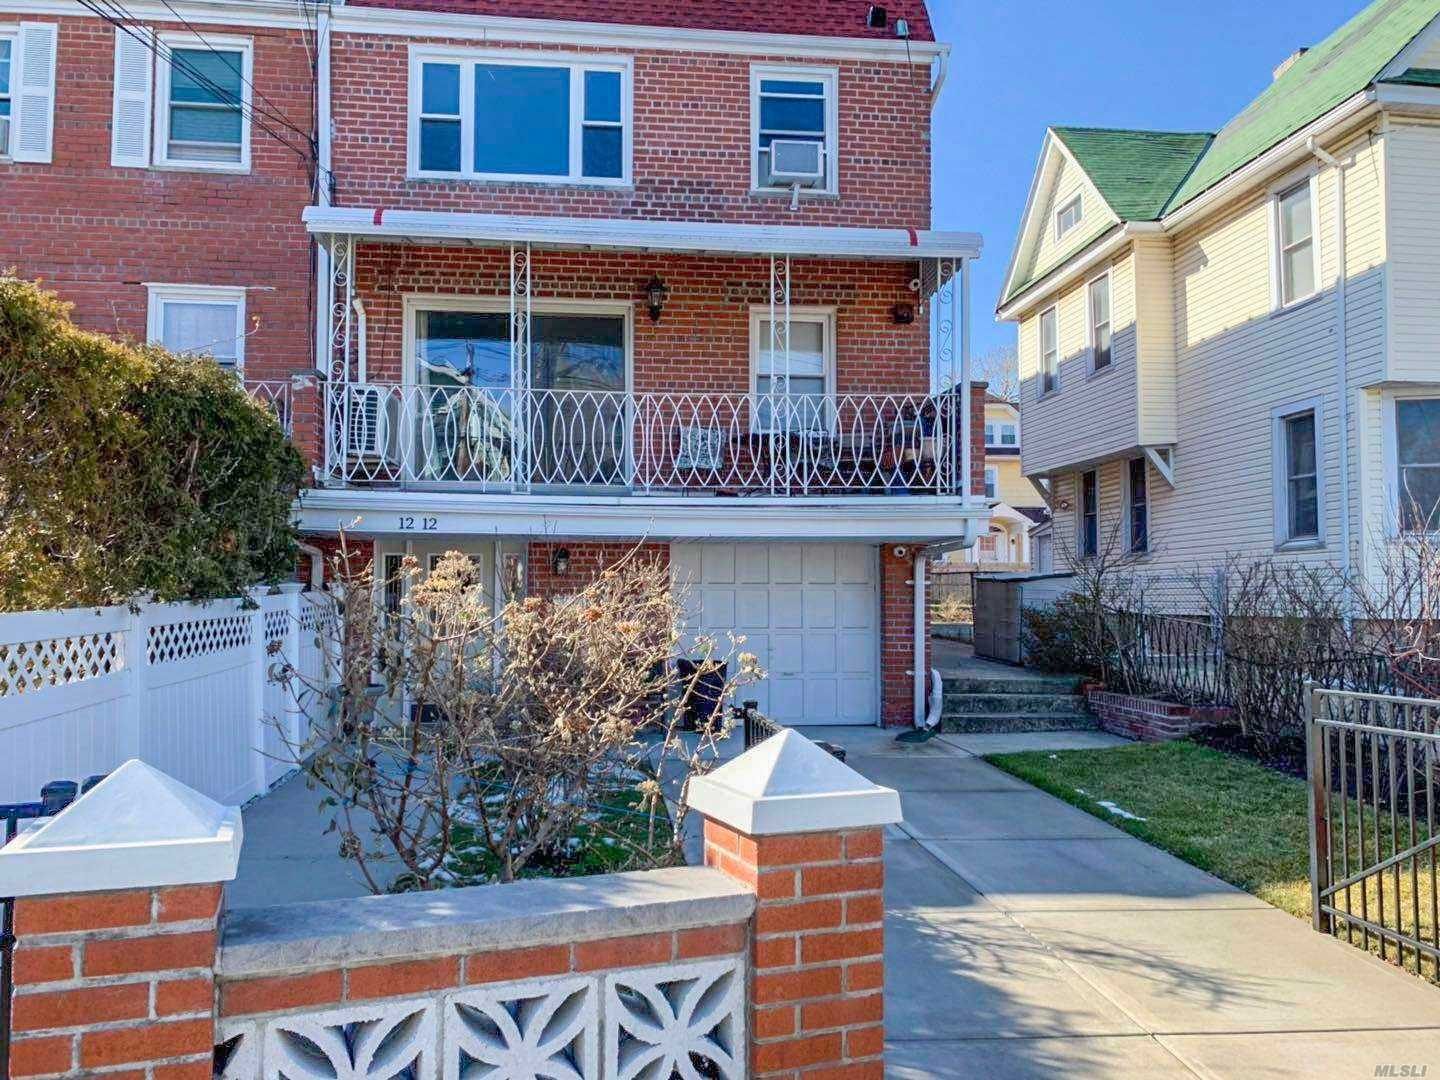 Fully Renovated 3 Bedrooms, 1.5 Baths, Brand New Kitchens, Living Room And Diner Room Combine. Over 1176 Sqft. Income And Credit Check. Heat And Hot Water Are Included. Asking $2300/Monthly. Walking Distance To Shopping Center, Restaurant, Transportation. Street Parking!